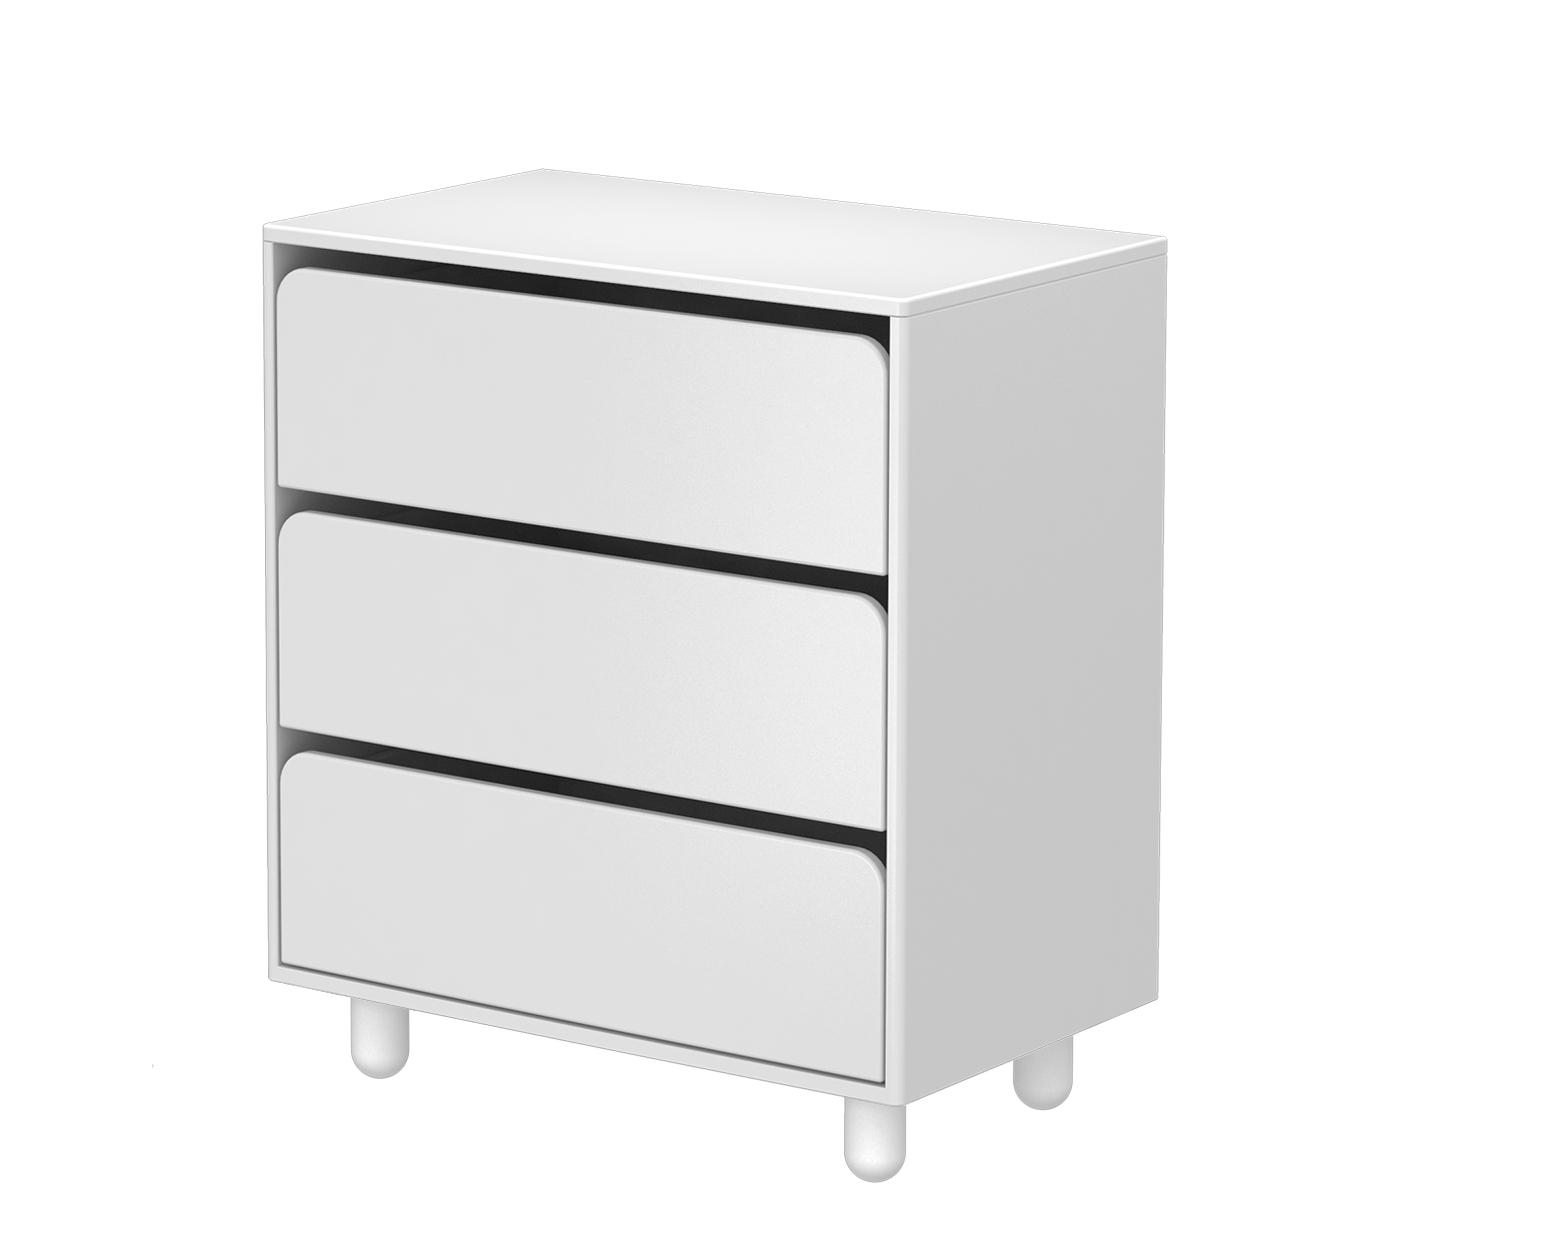 Cabby - Commode 3 tiroirs